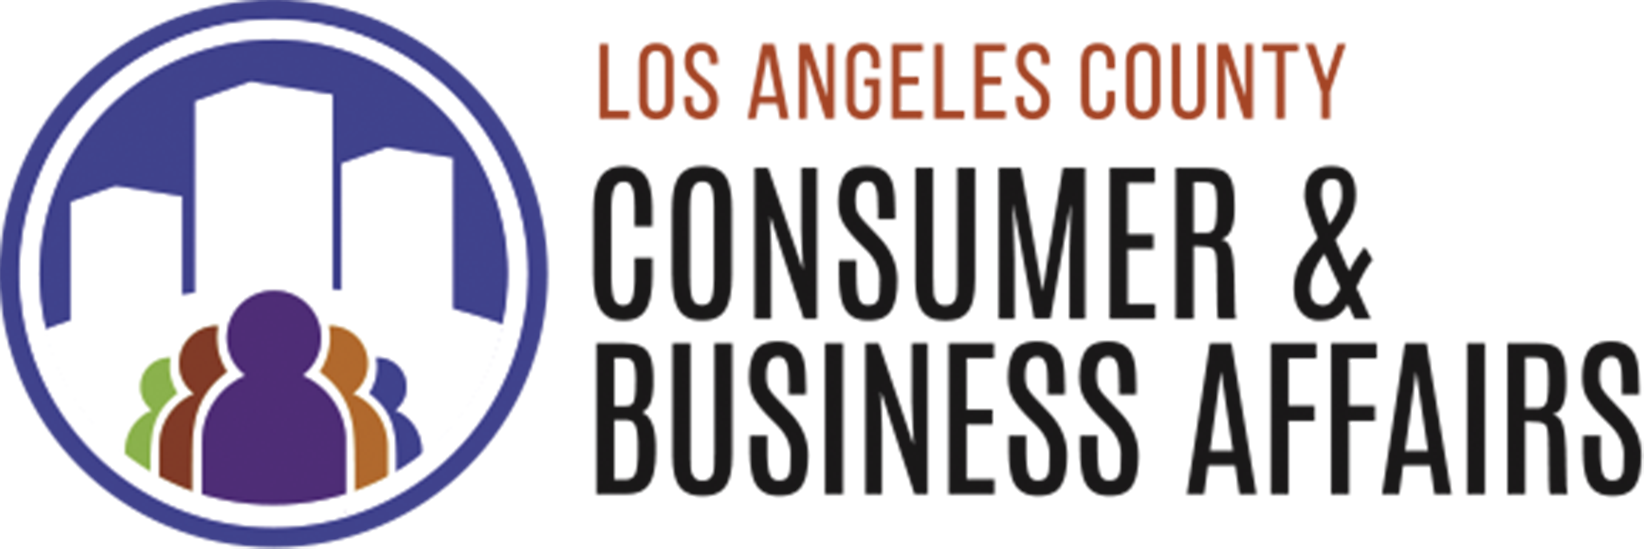 Los Angeles County Dept of Consumer and Business Affairs Logo